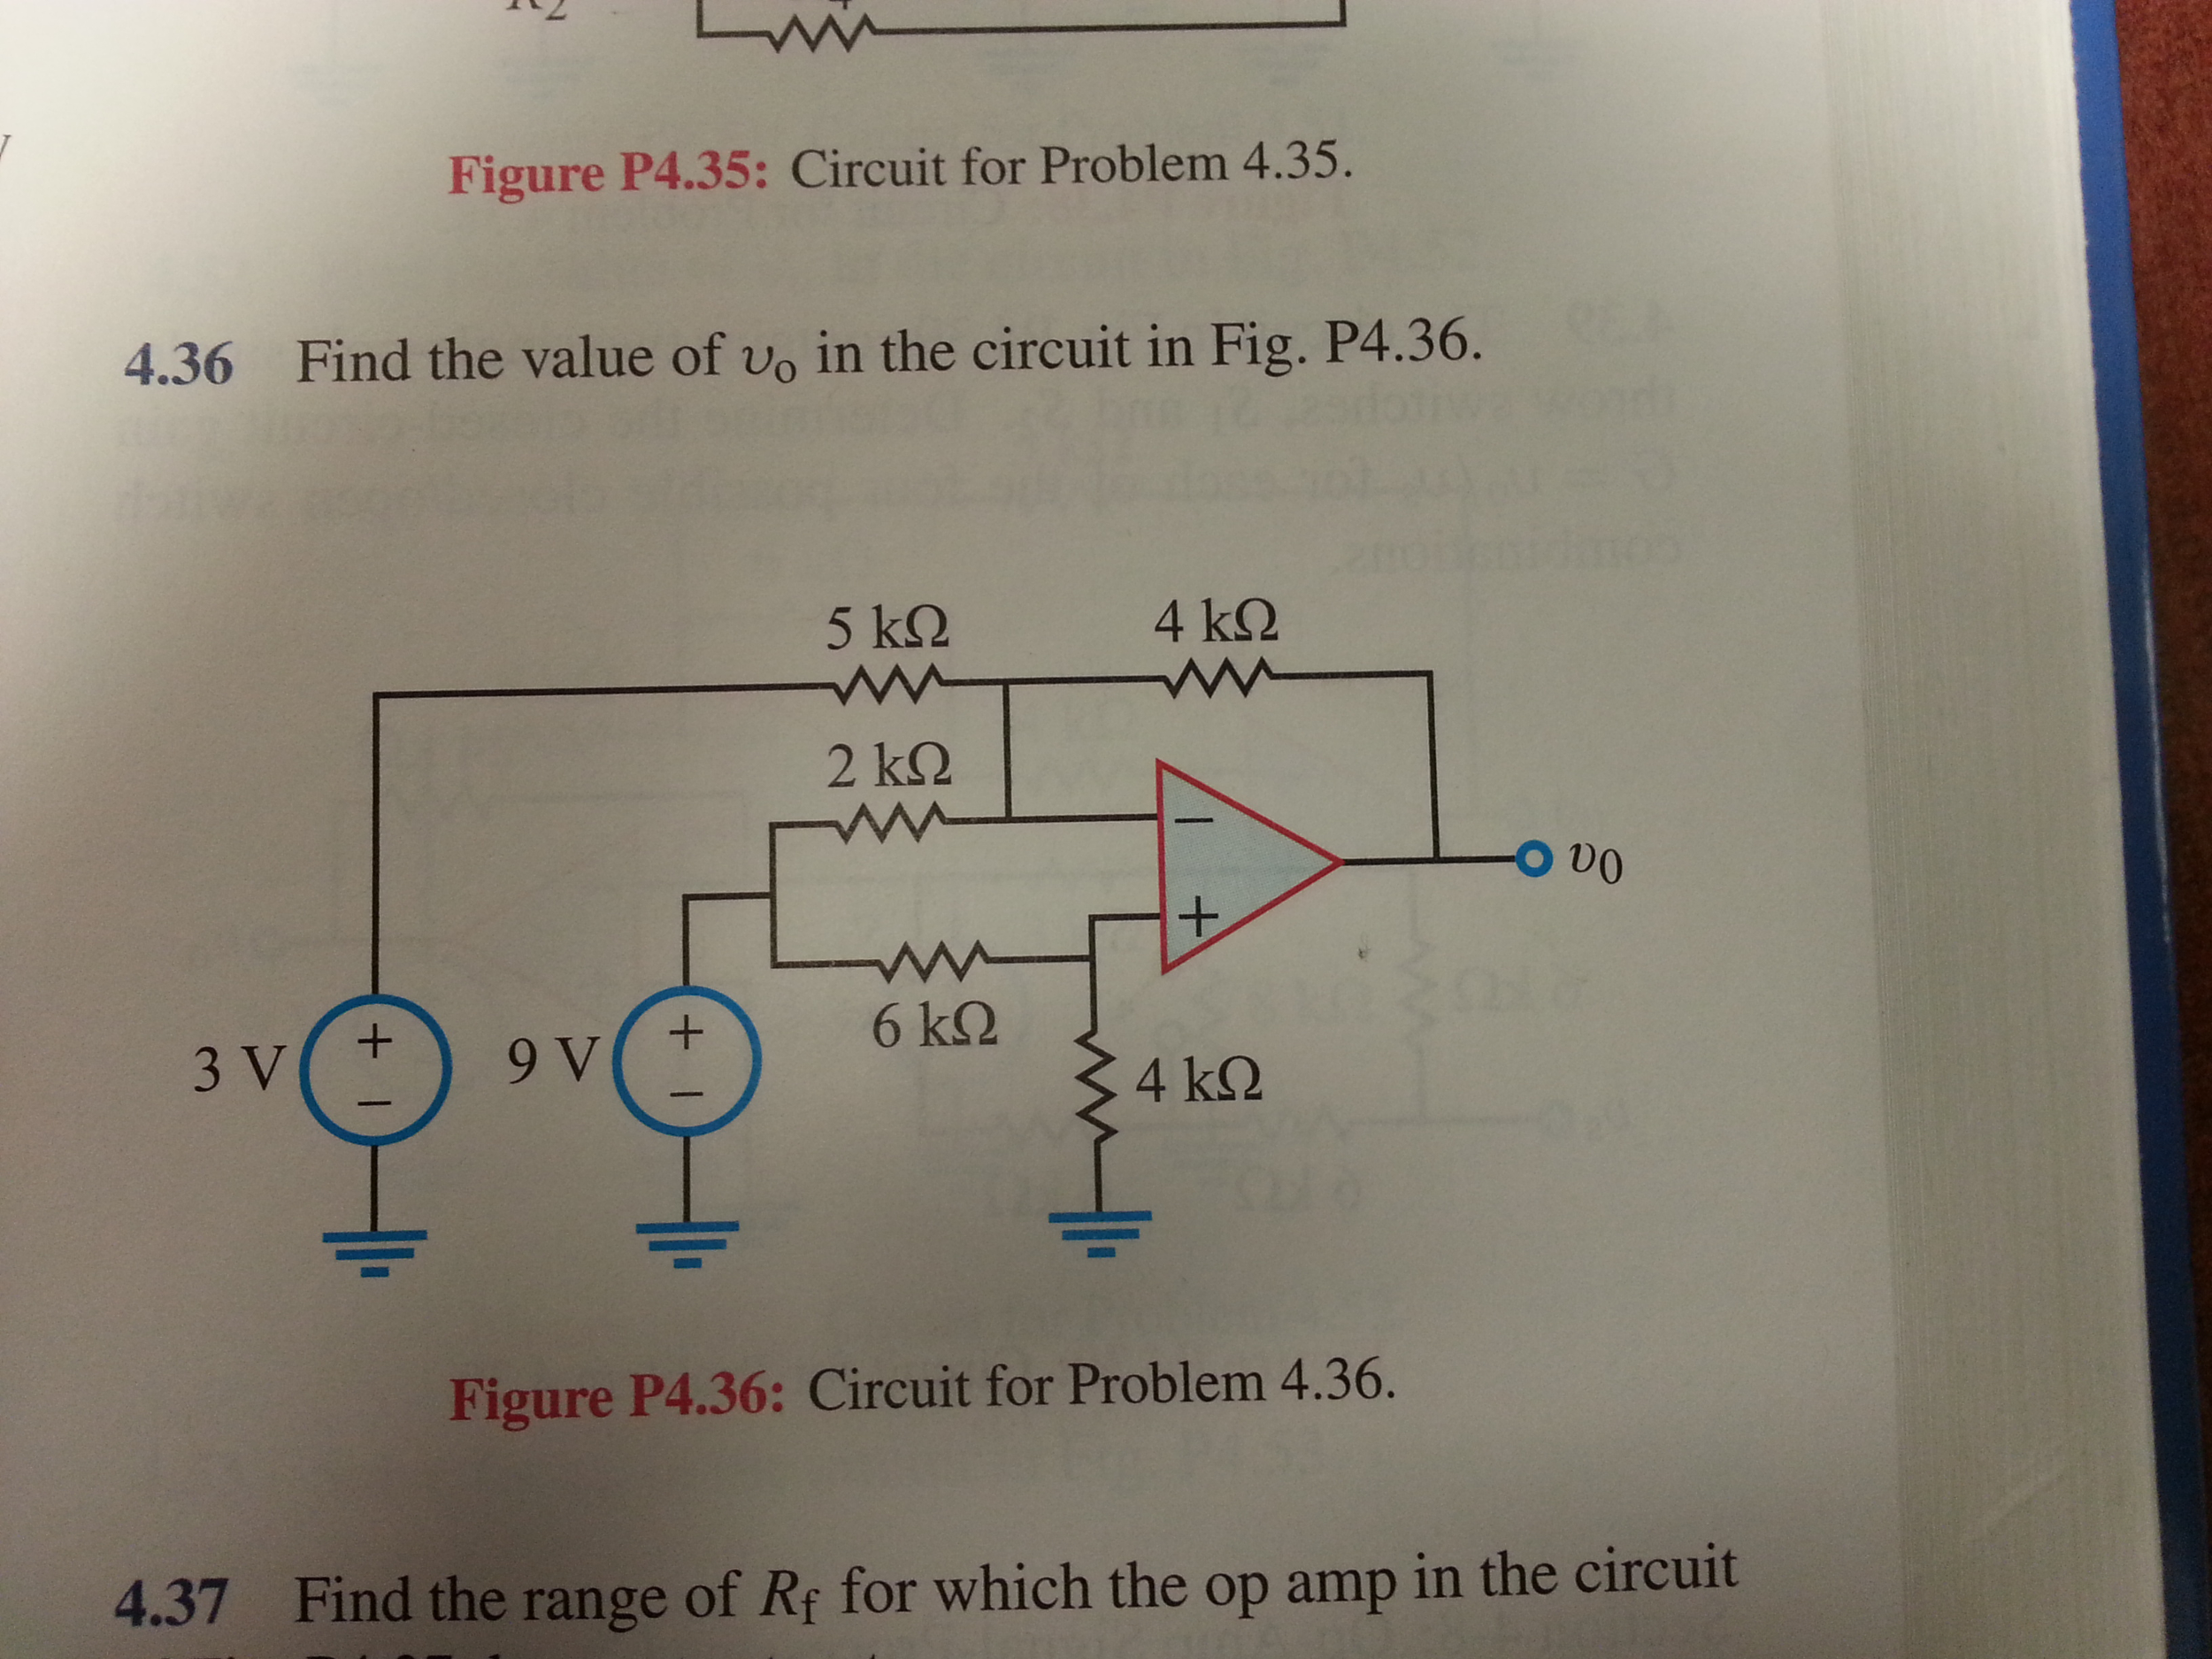 Find the value of v0 in the circuit in Fig. P4.36.